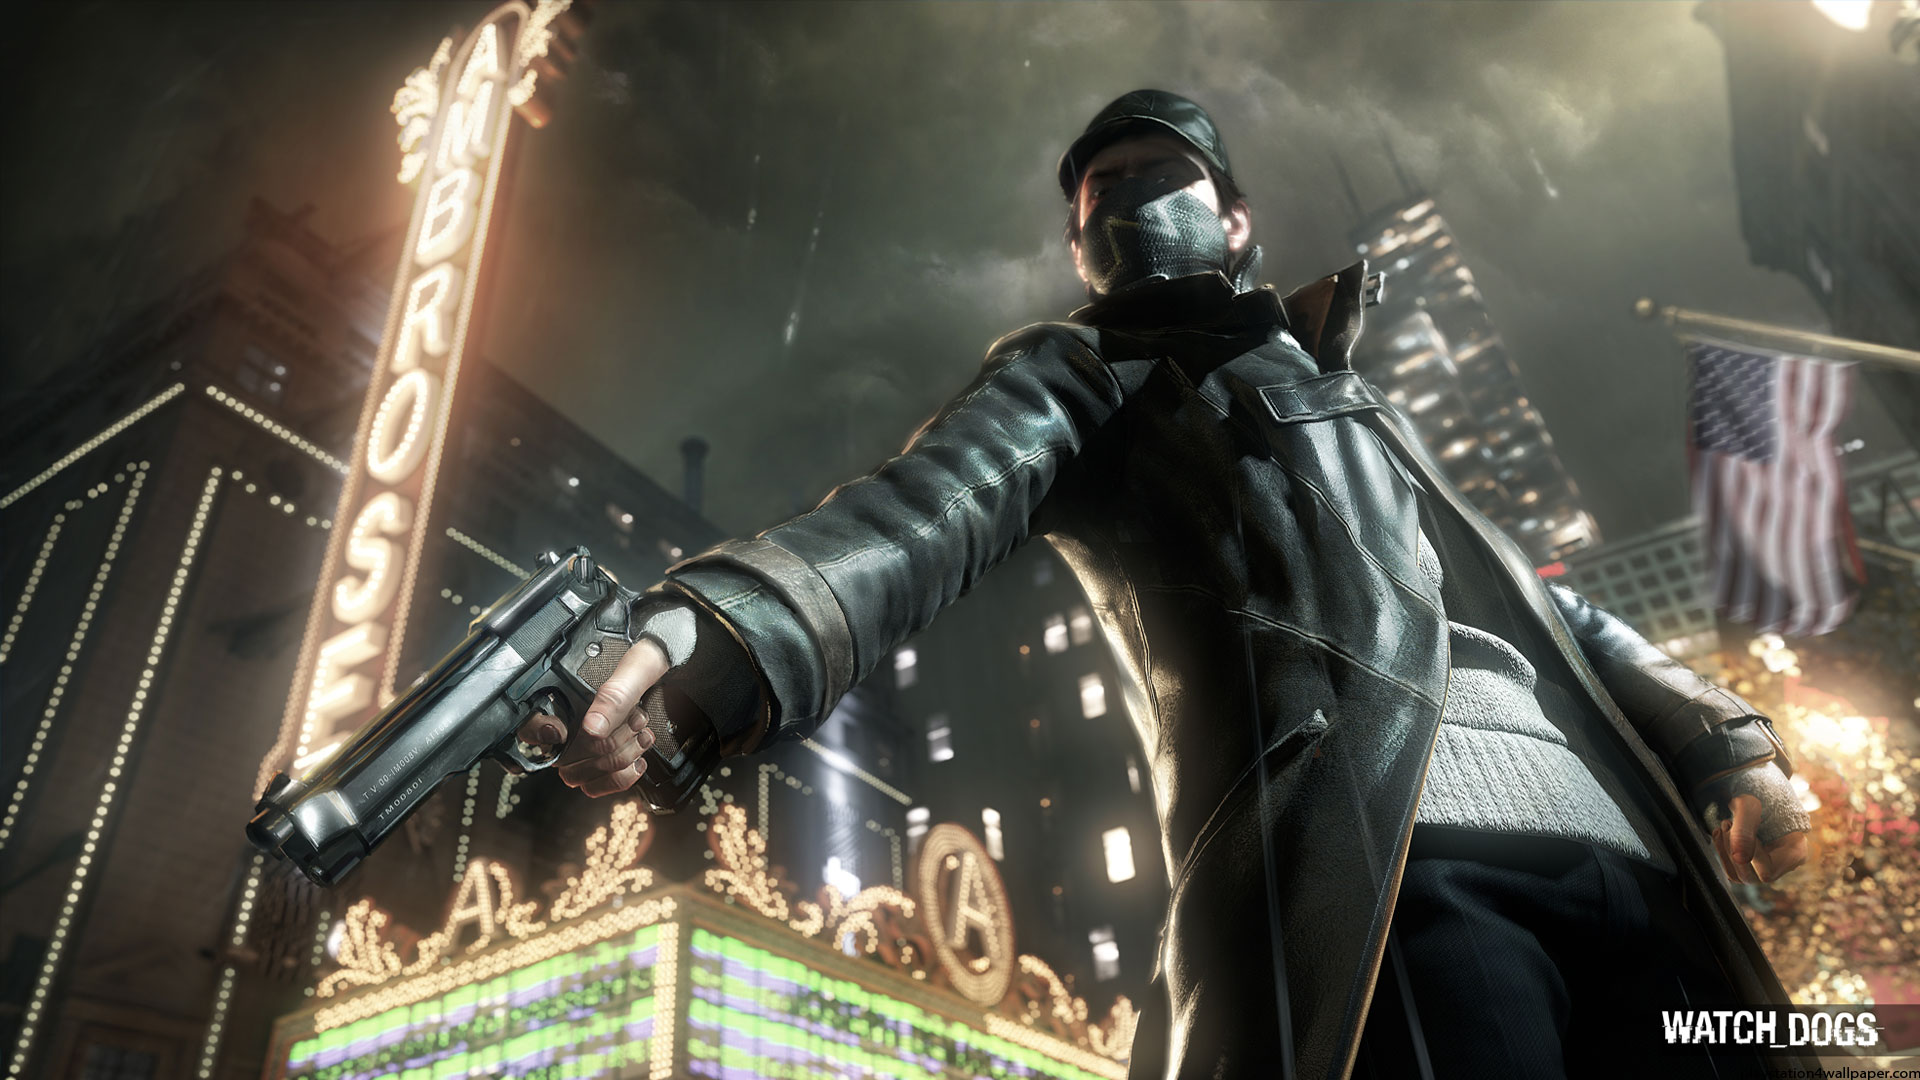 Free Download Watch Dogs Wallpaper Hd Wallpapers Full Hd 1080p